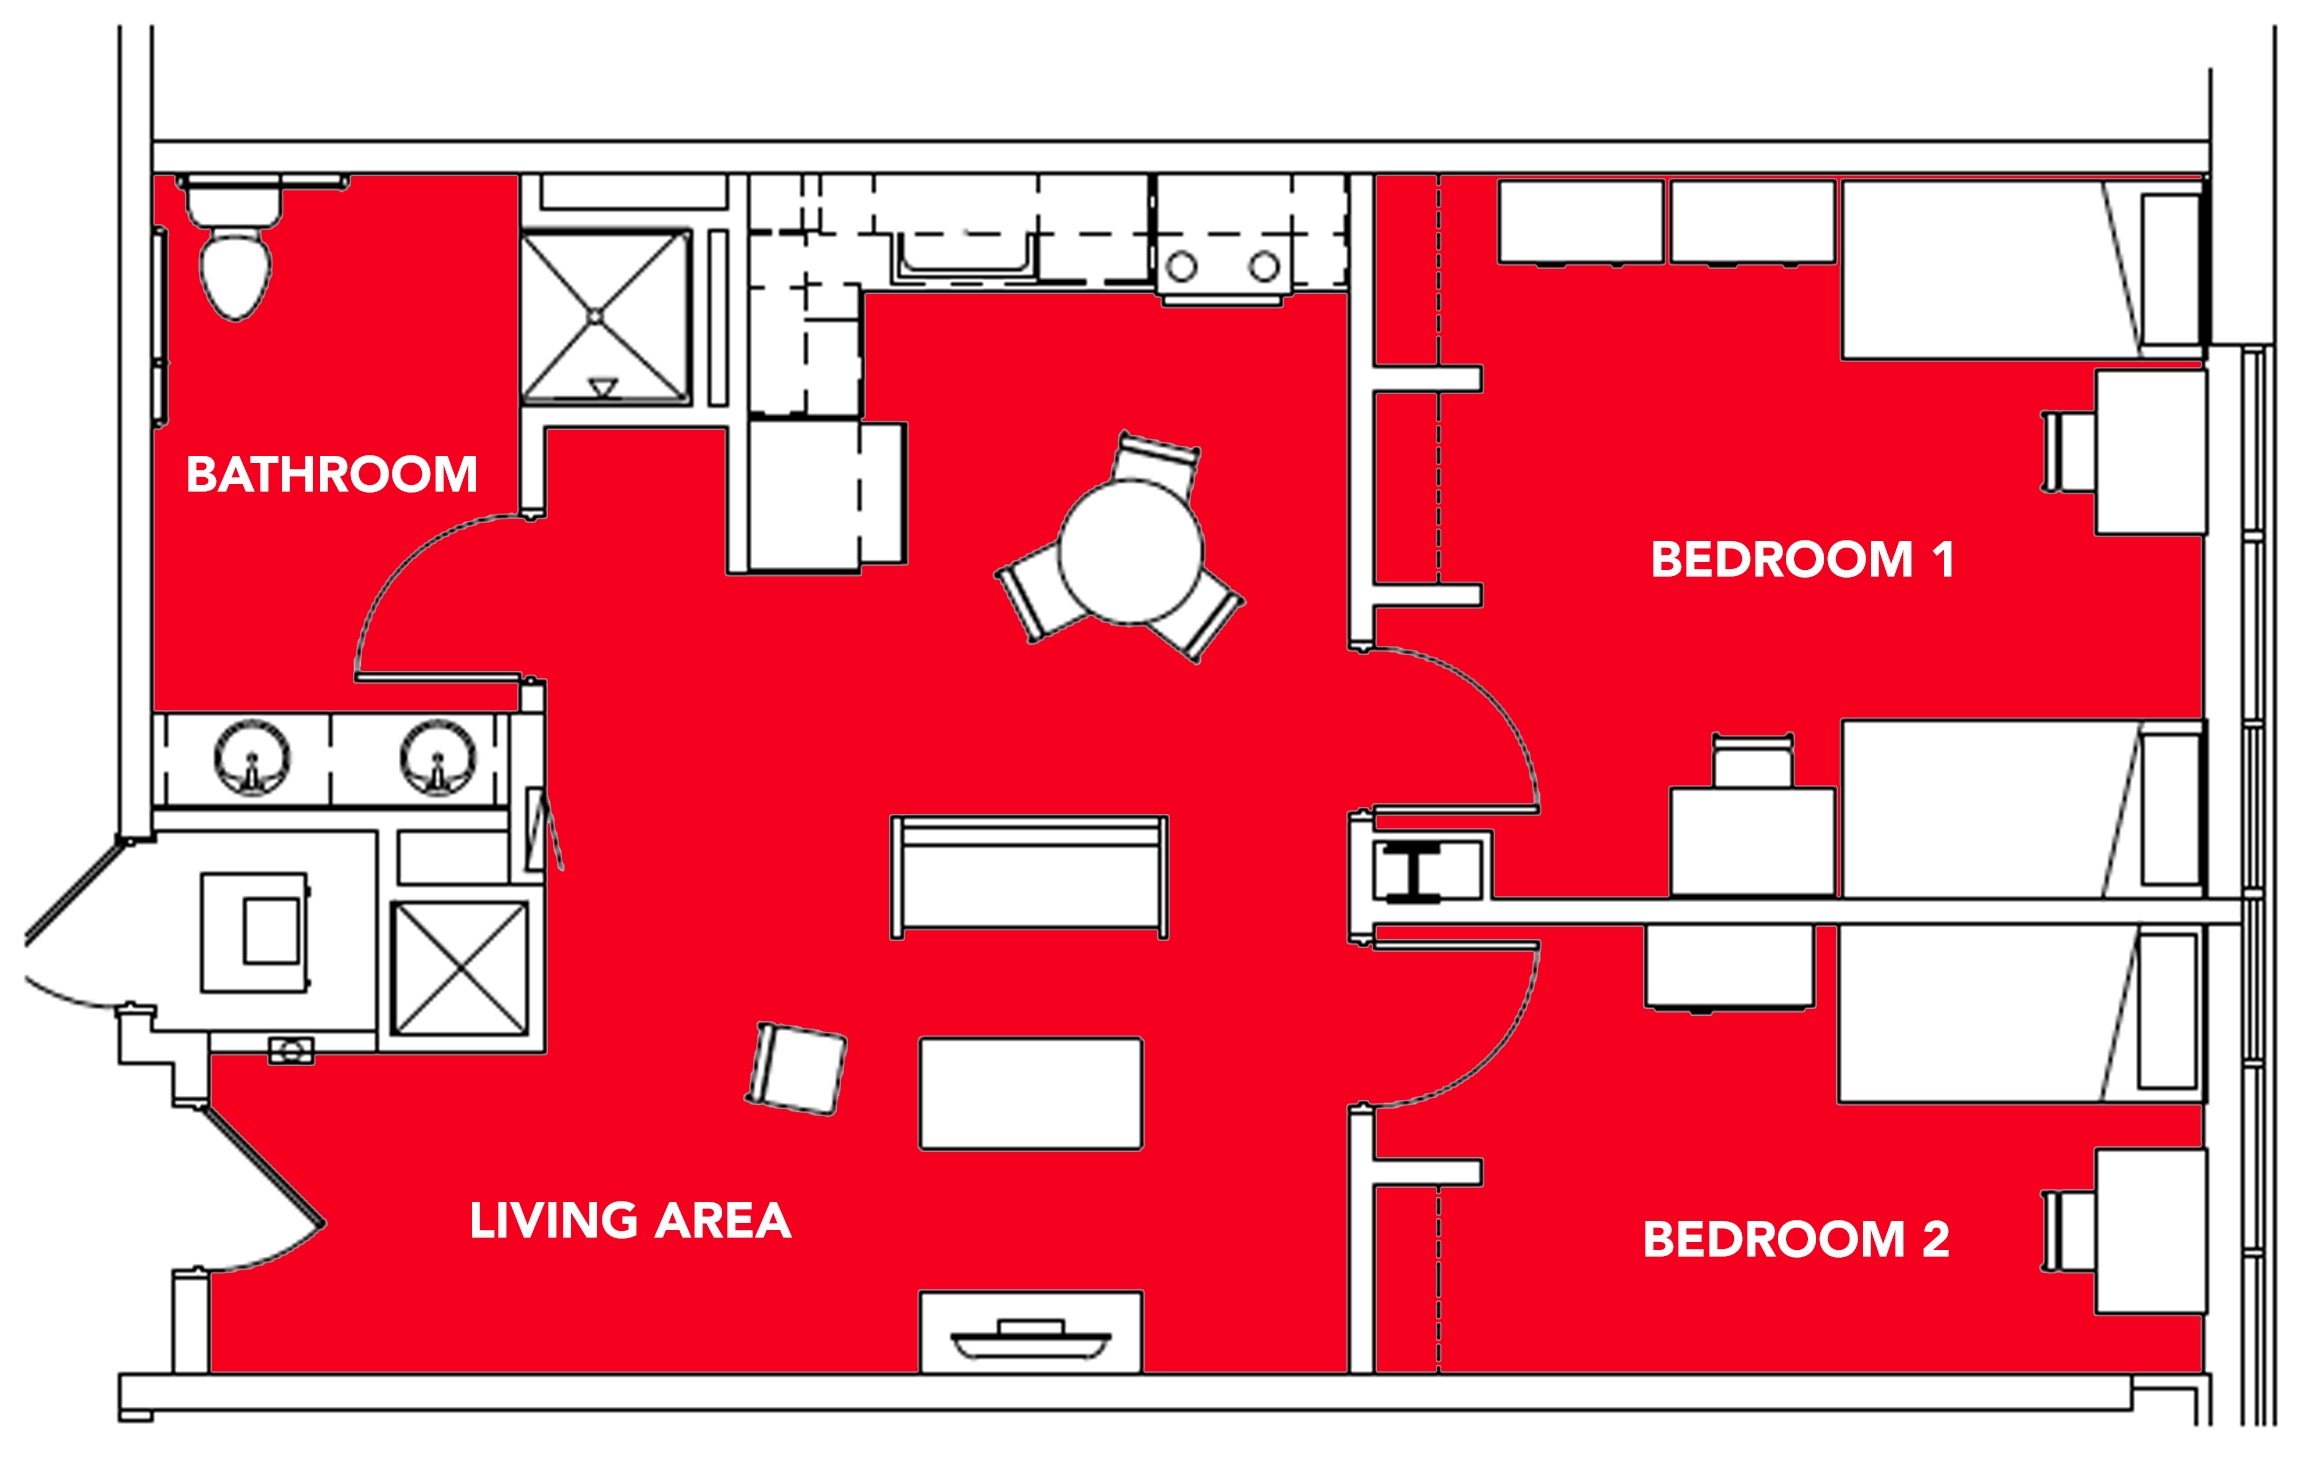 3 Students -  2 bed, 1 bath